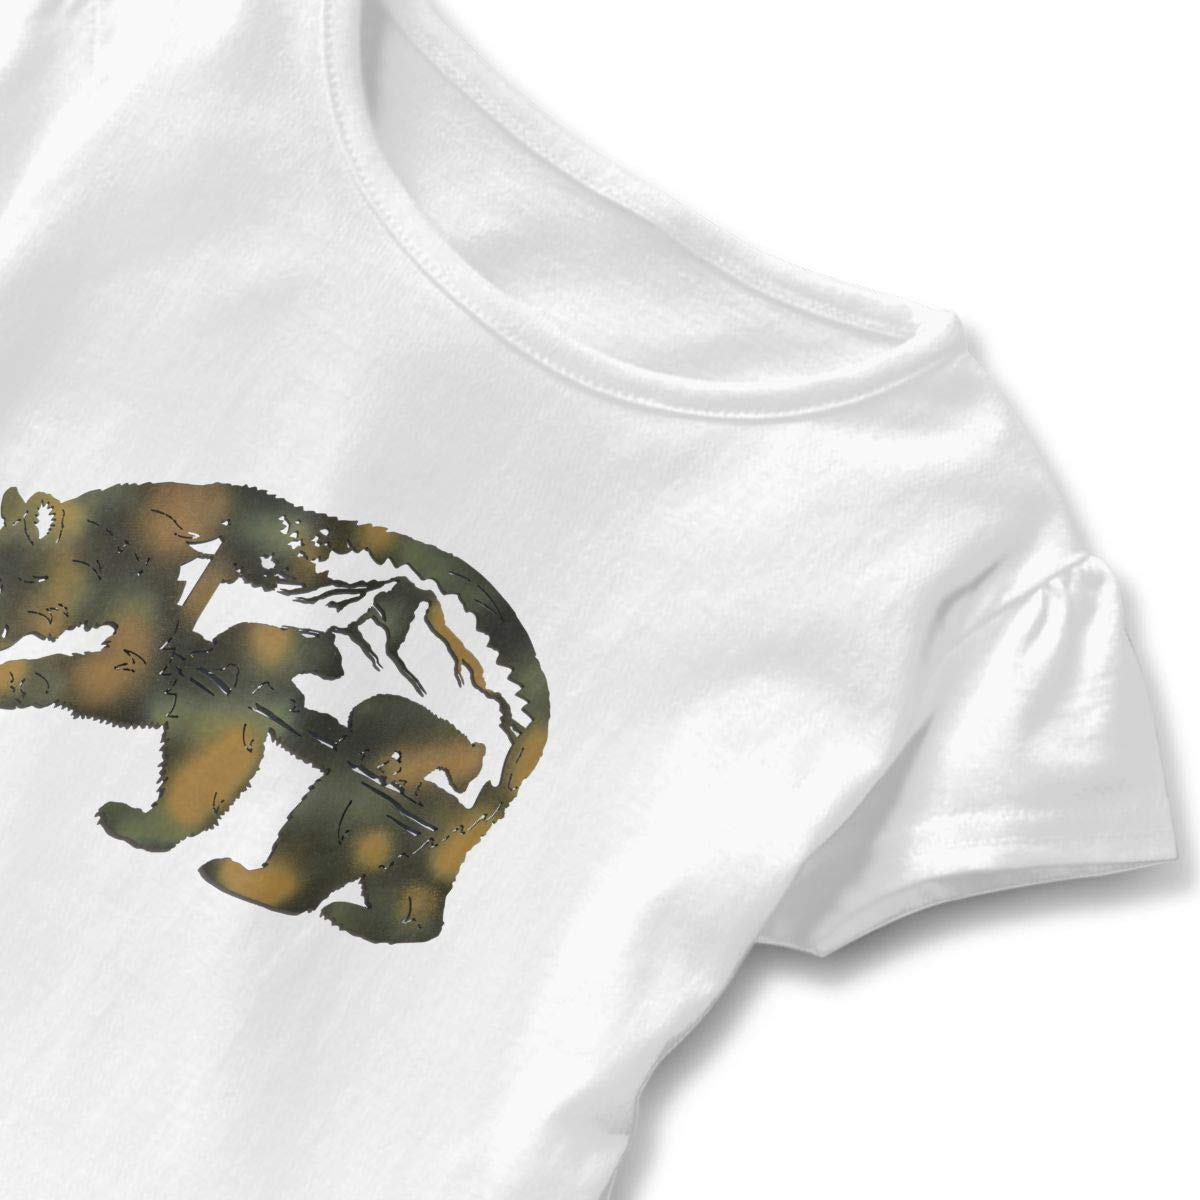 Cabin Following Mama Bear Cute Adorable Printed Patterns Basic Ruffle Tee Shirts with Short Sleeves and O-Neck for Daily Party School Outside Playing White